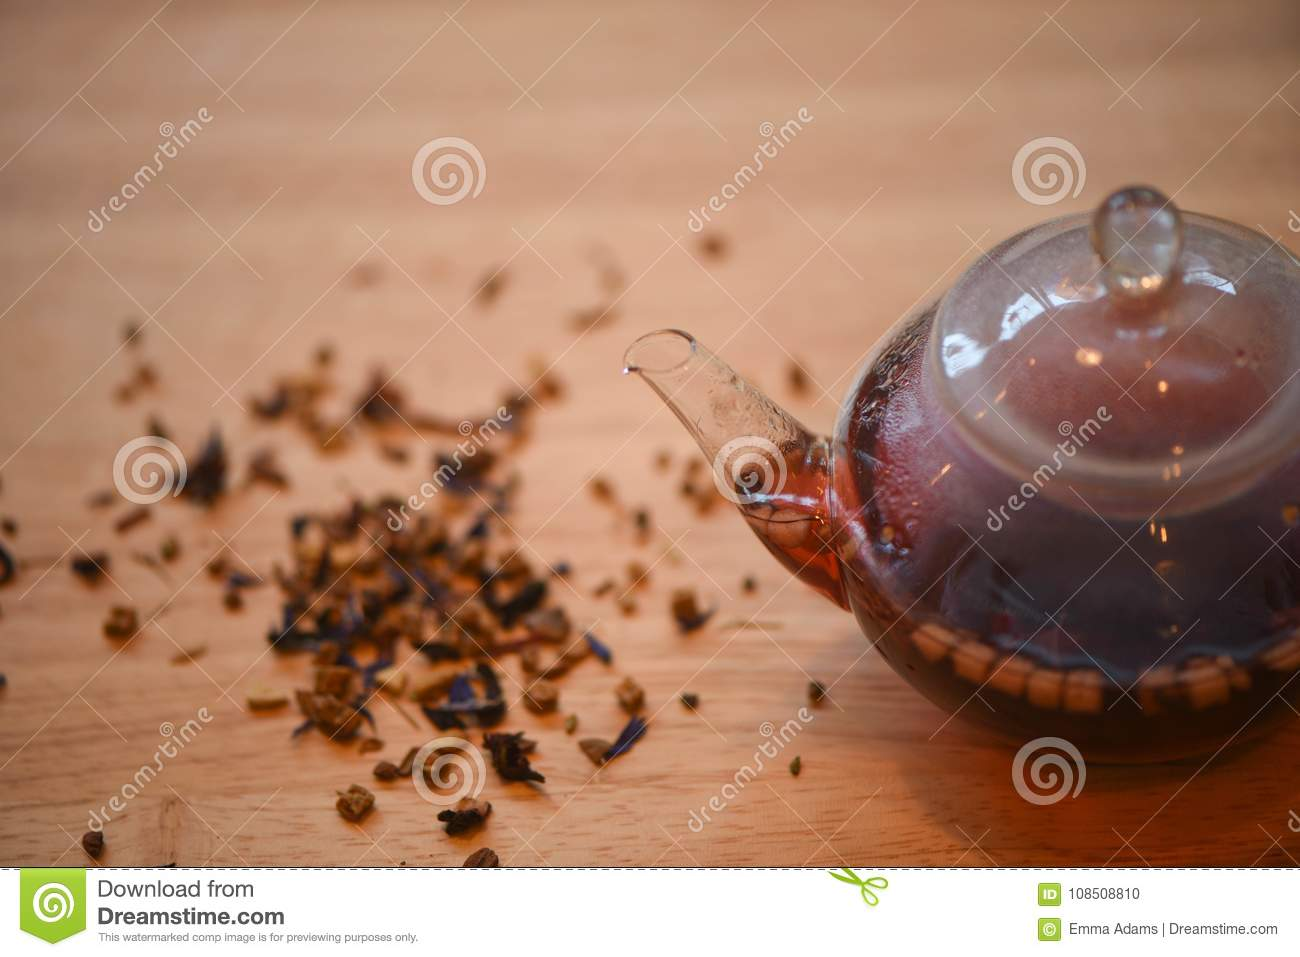 Drink photography of a close up glass teapot filled with hot red color apple spice fruit flavor tea with scattered leaves on wood